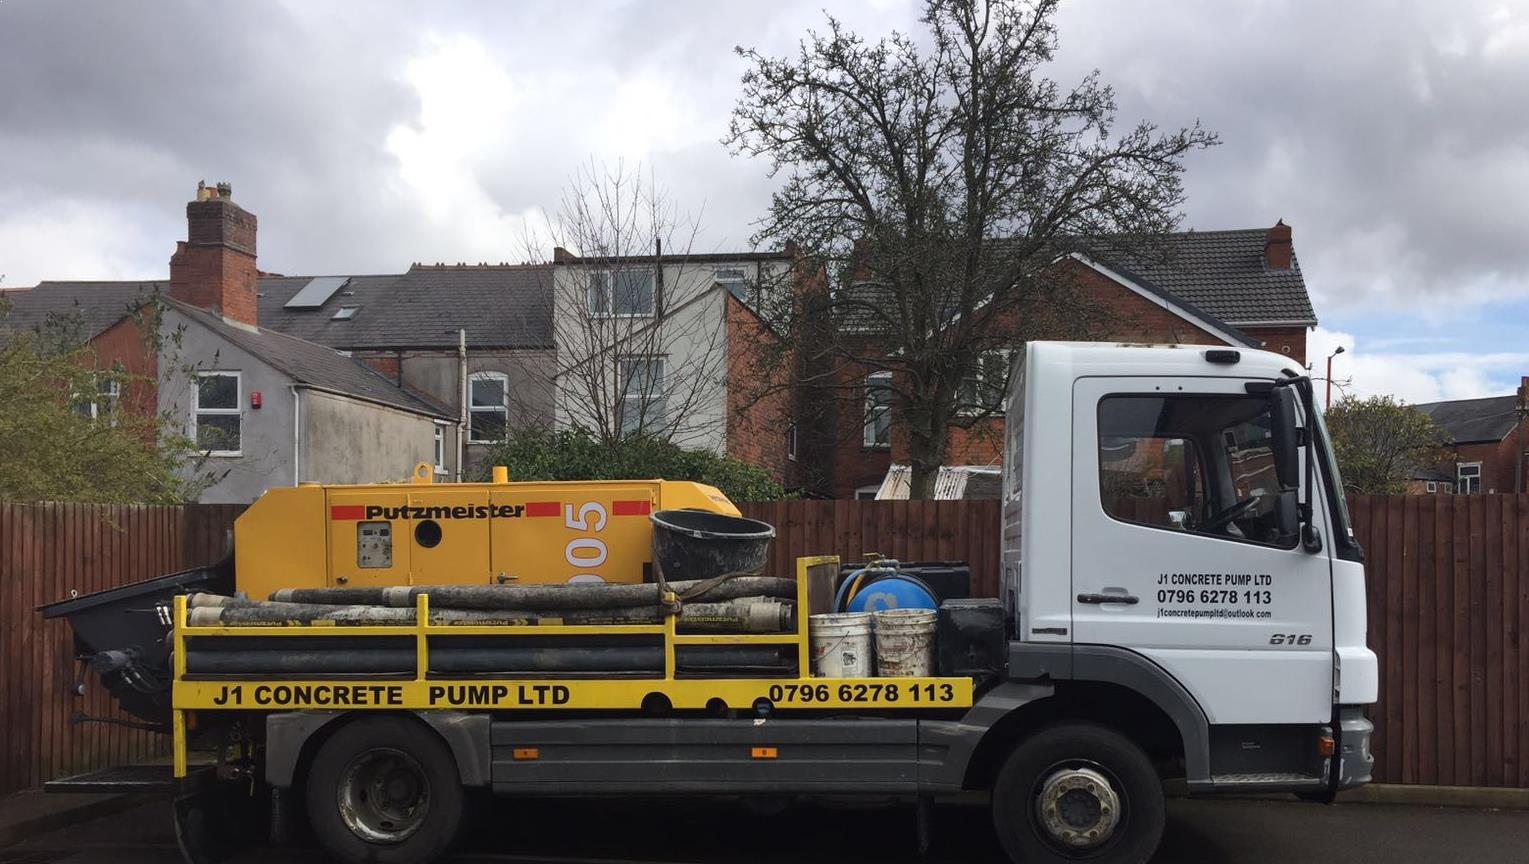 J1 Concrete Pump Ltd based in Birmingham